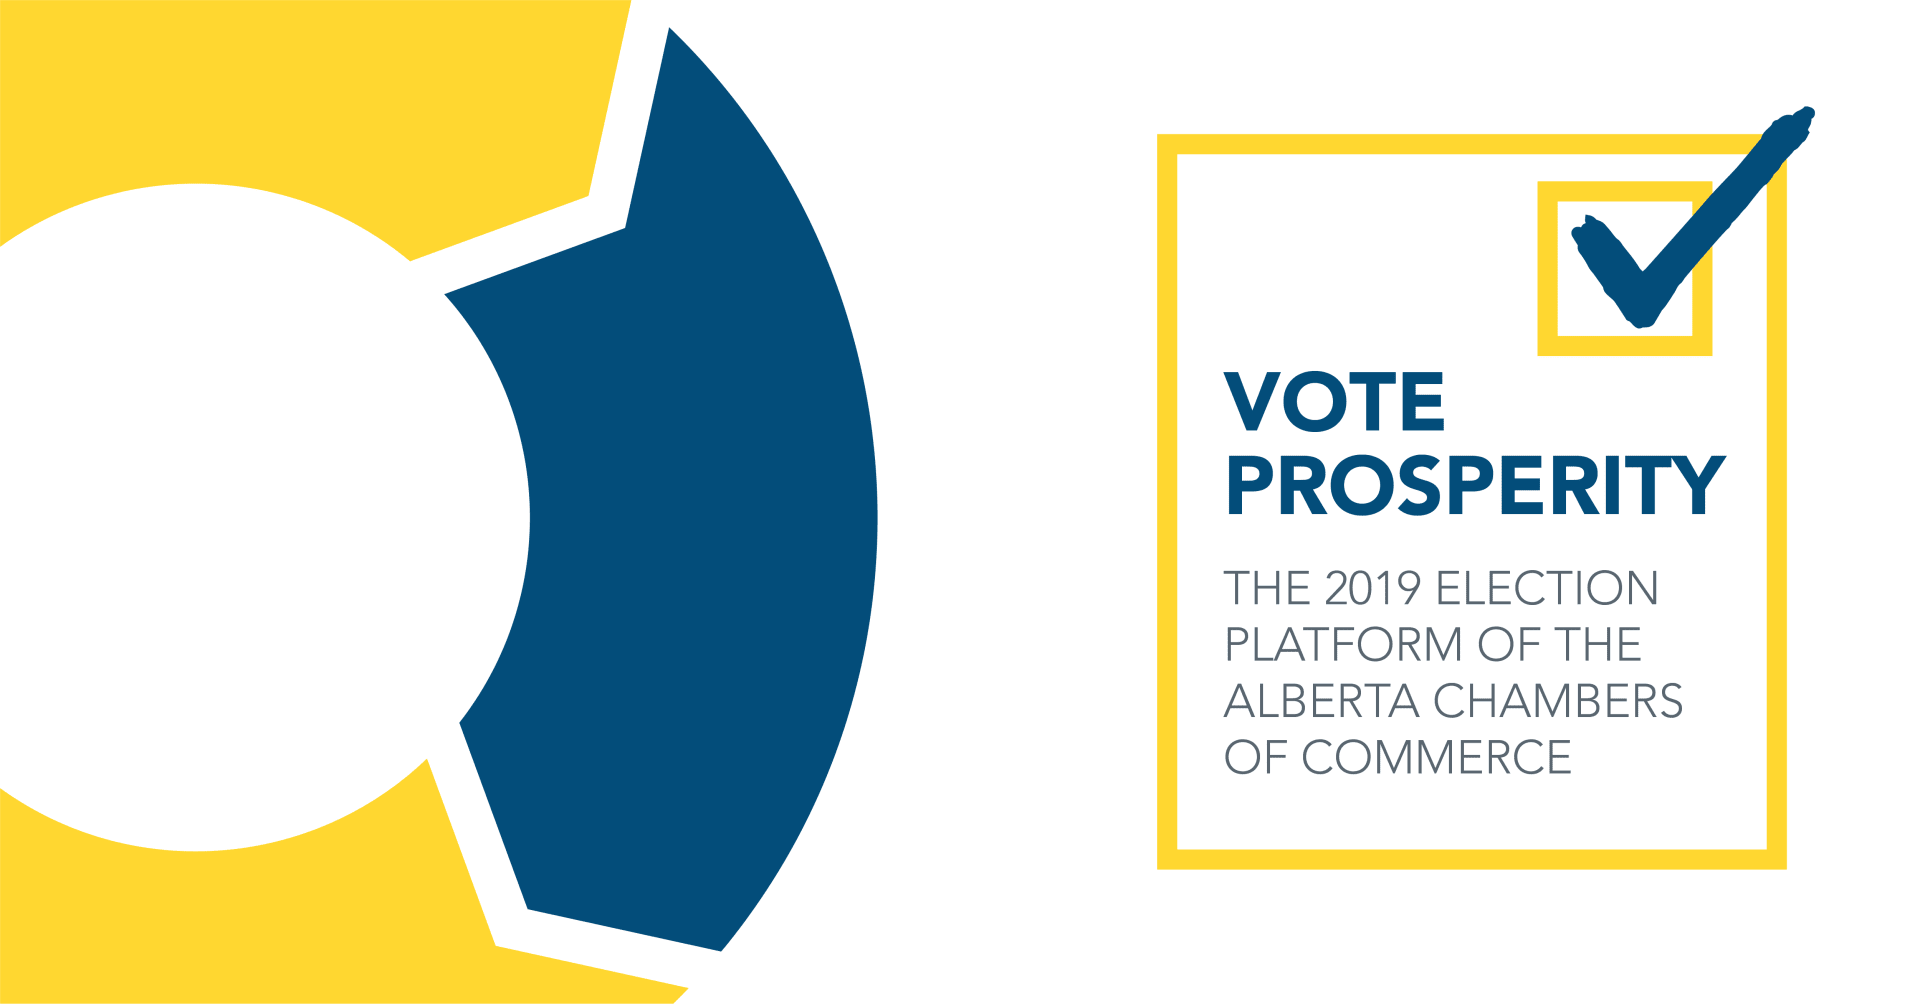 Vote Prosperity - Alberta Chambers of Commerce 2019 Alberta Election Platform for Business